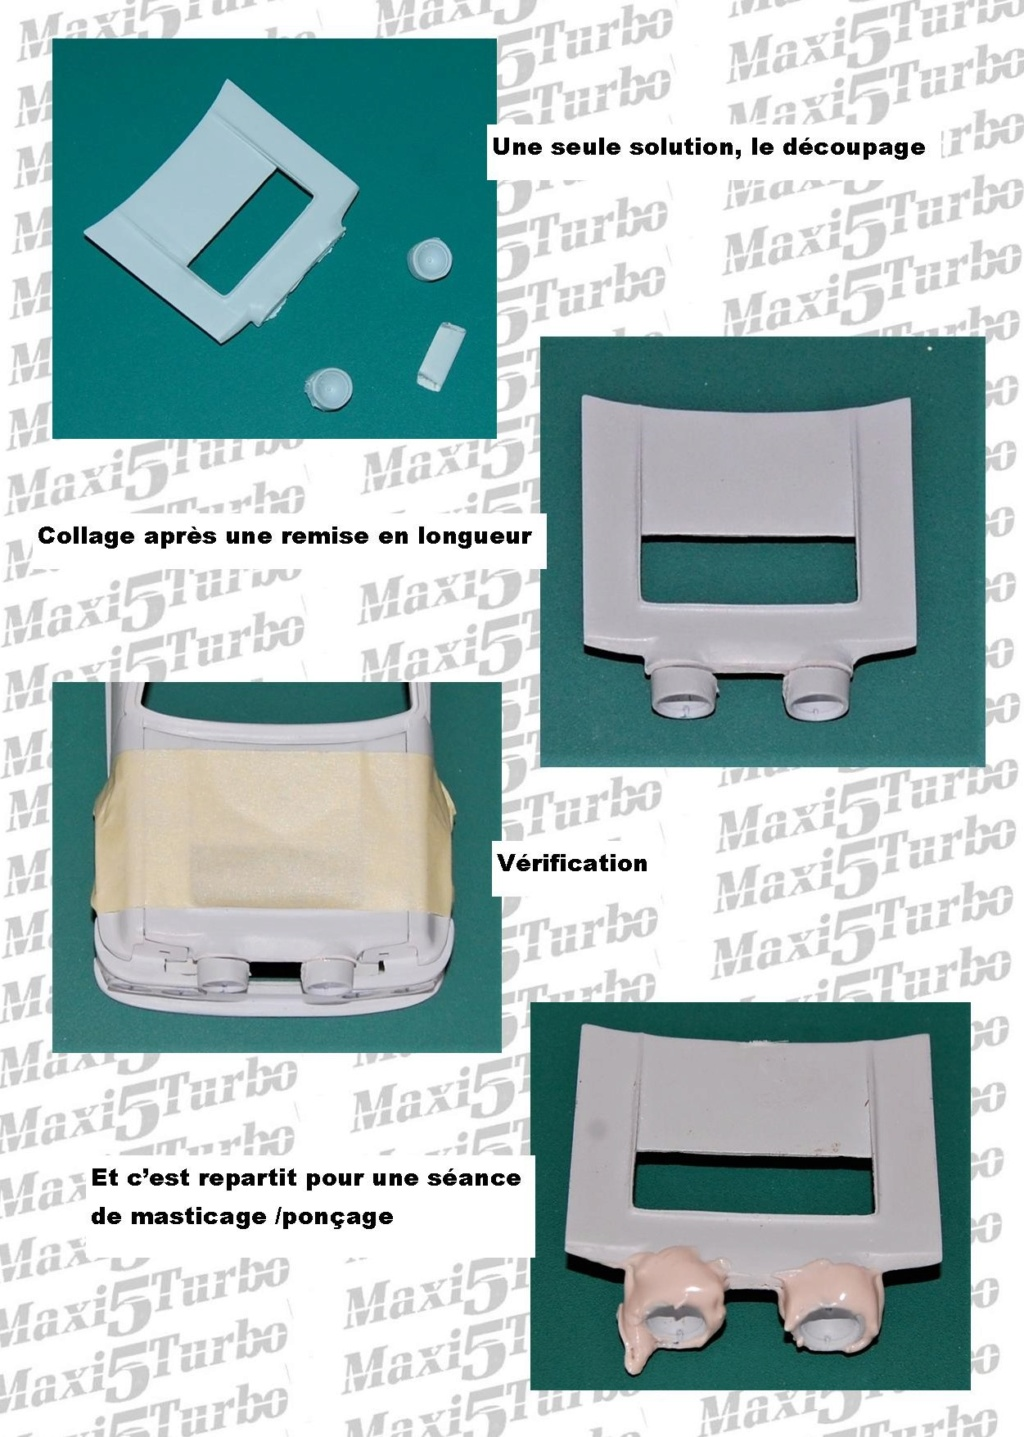 (1/24) Renault 5 Maxi turbo Ref 80717 ( Hors delai ) - Page 5 5910